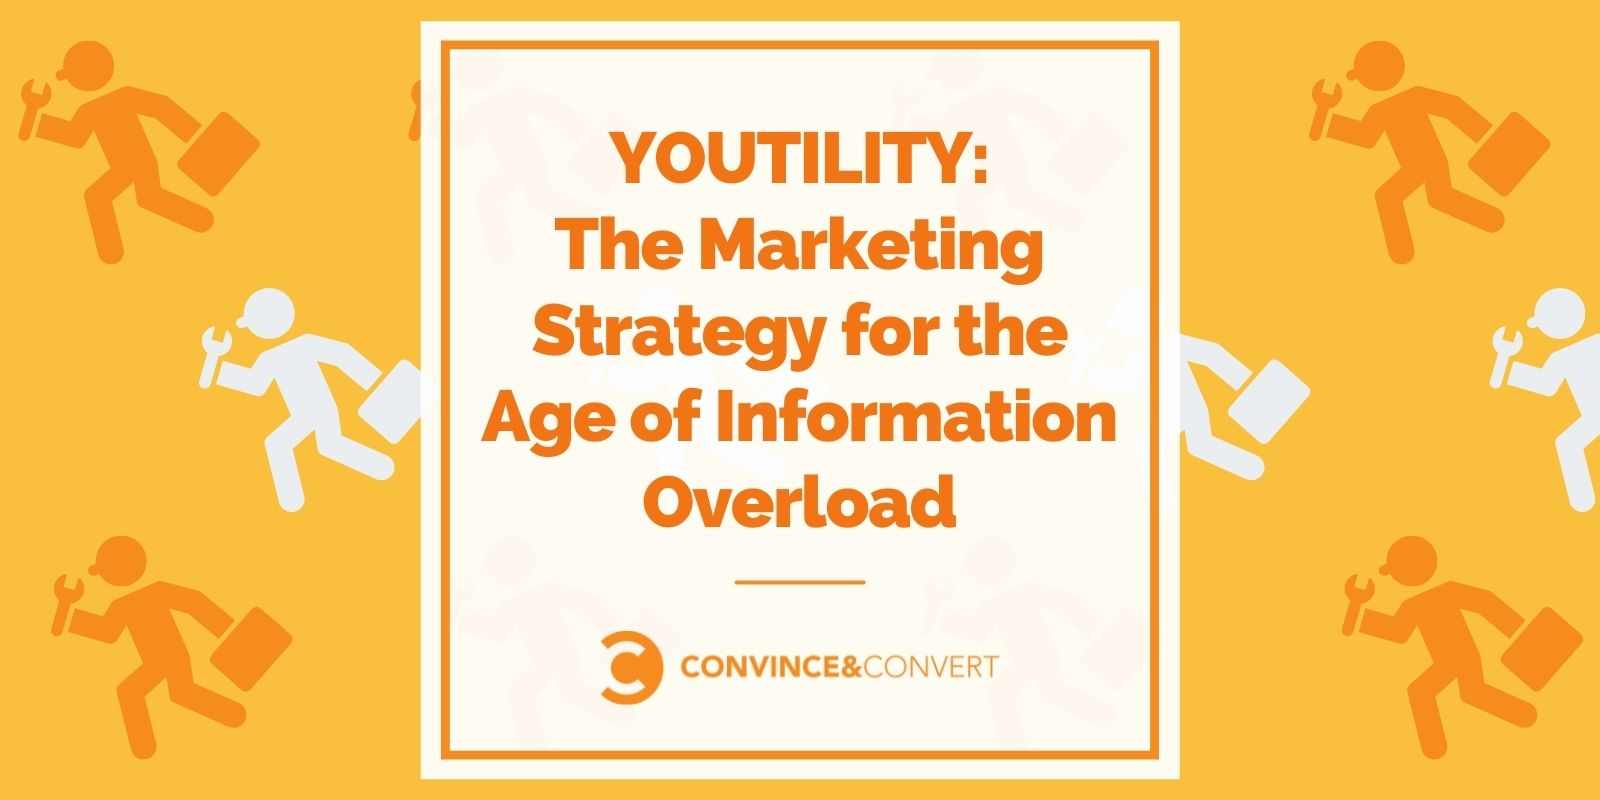 Youtility by Jay Baer – The Marketing Strategy for the Age of Information Overload